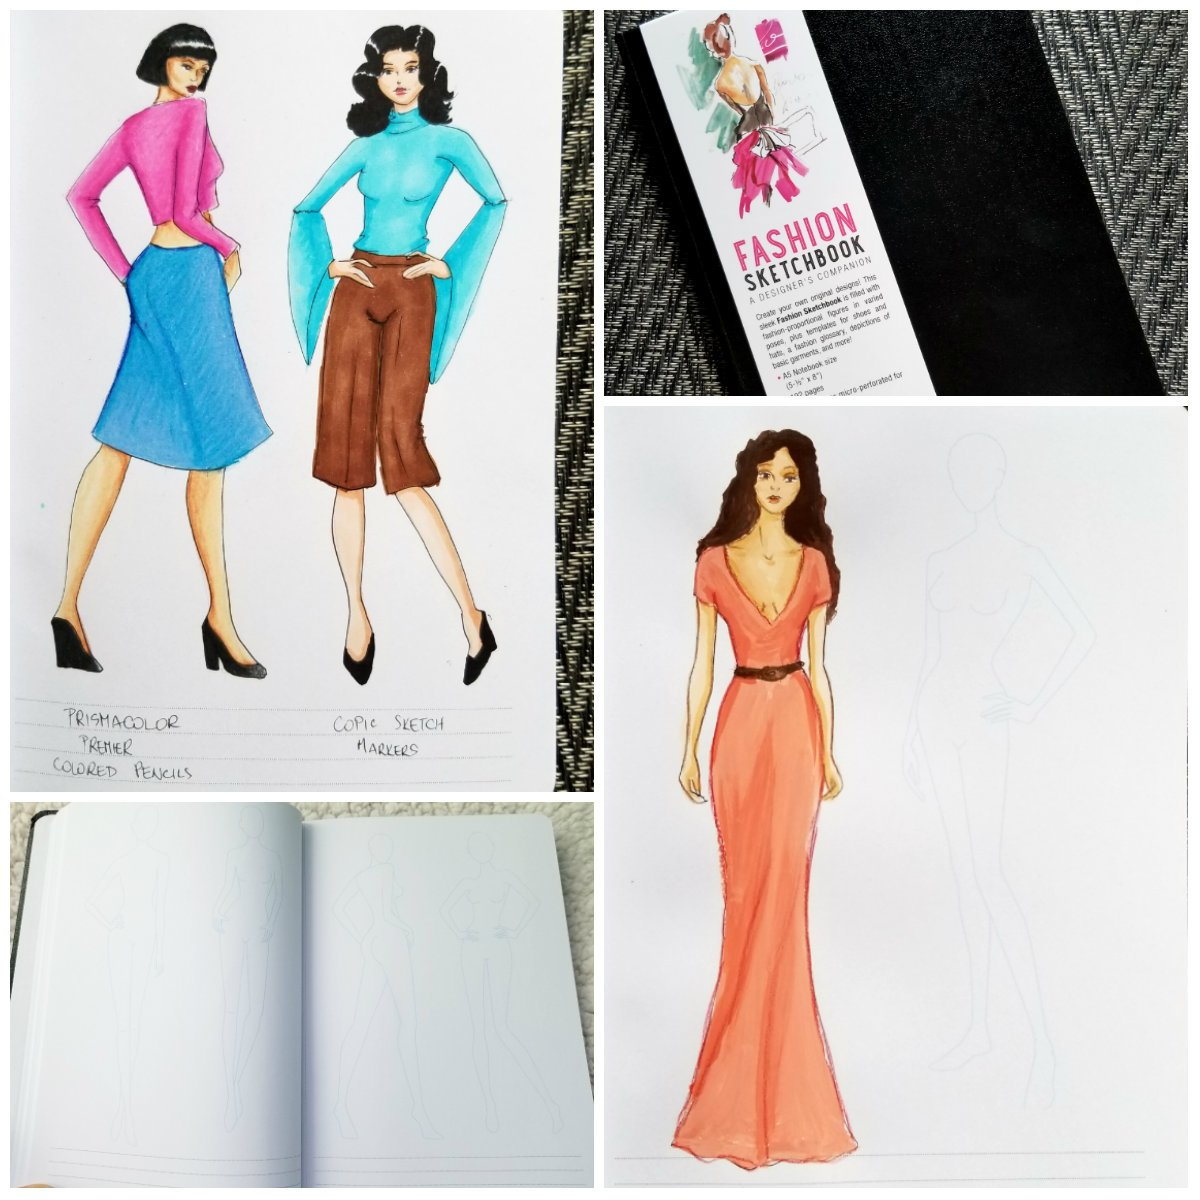 Review Of Fashion Sketchbook A Designer S Companion